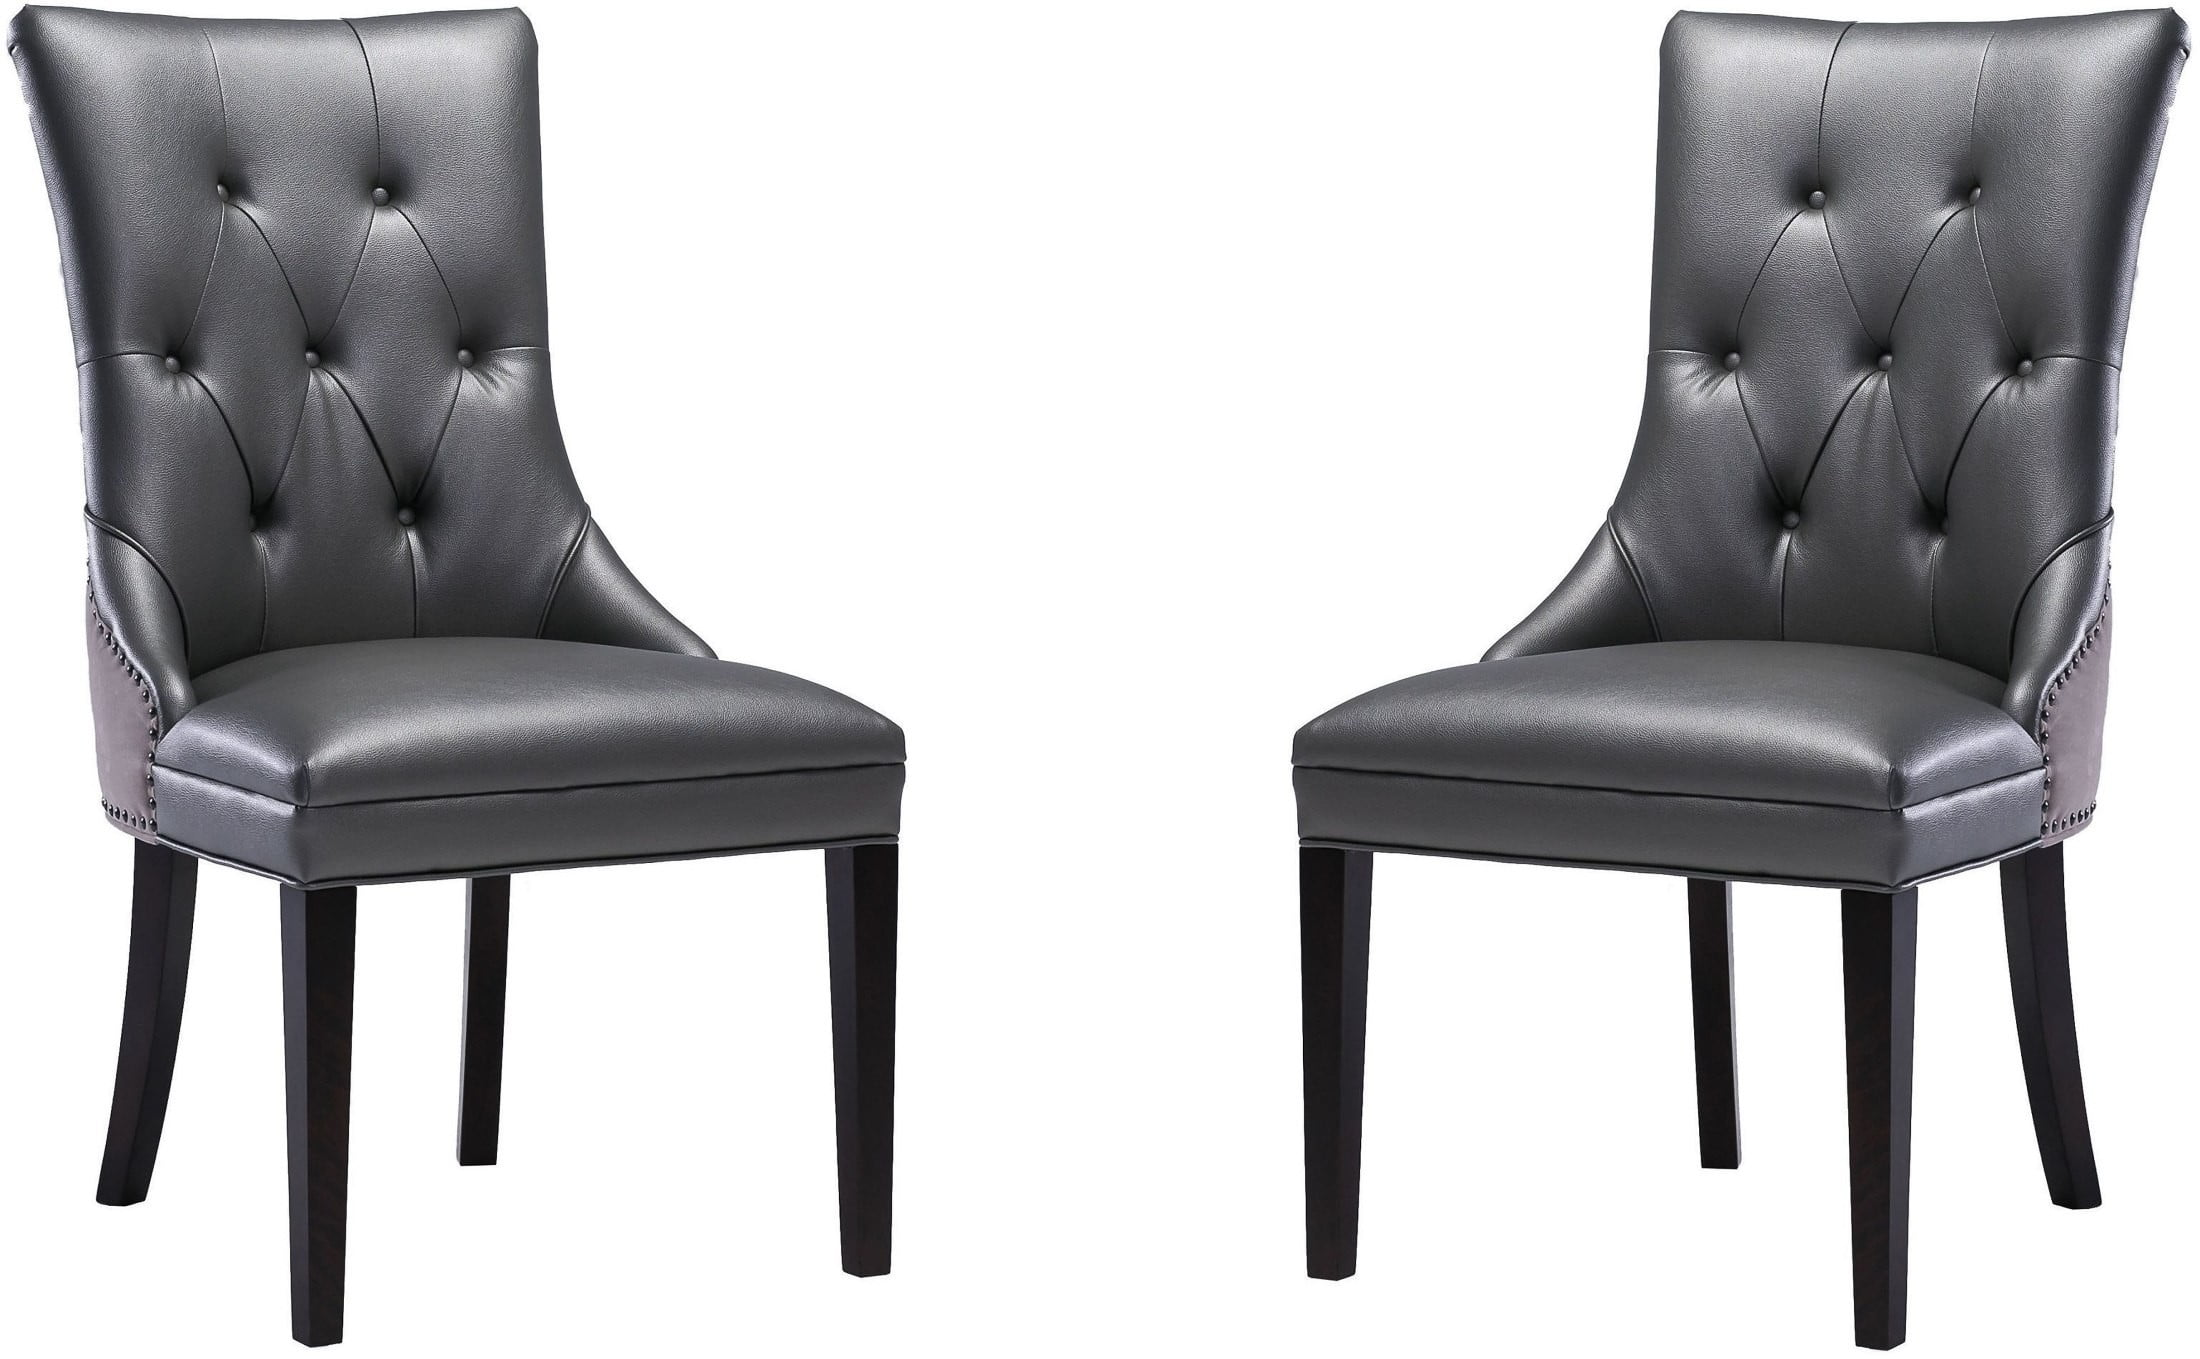 Ester Grey Dining Chair Set of 2 from TOV